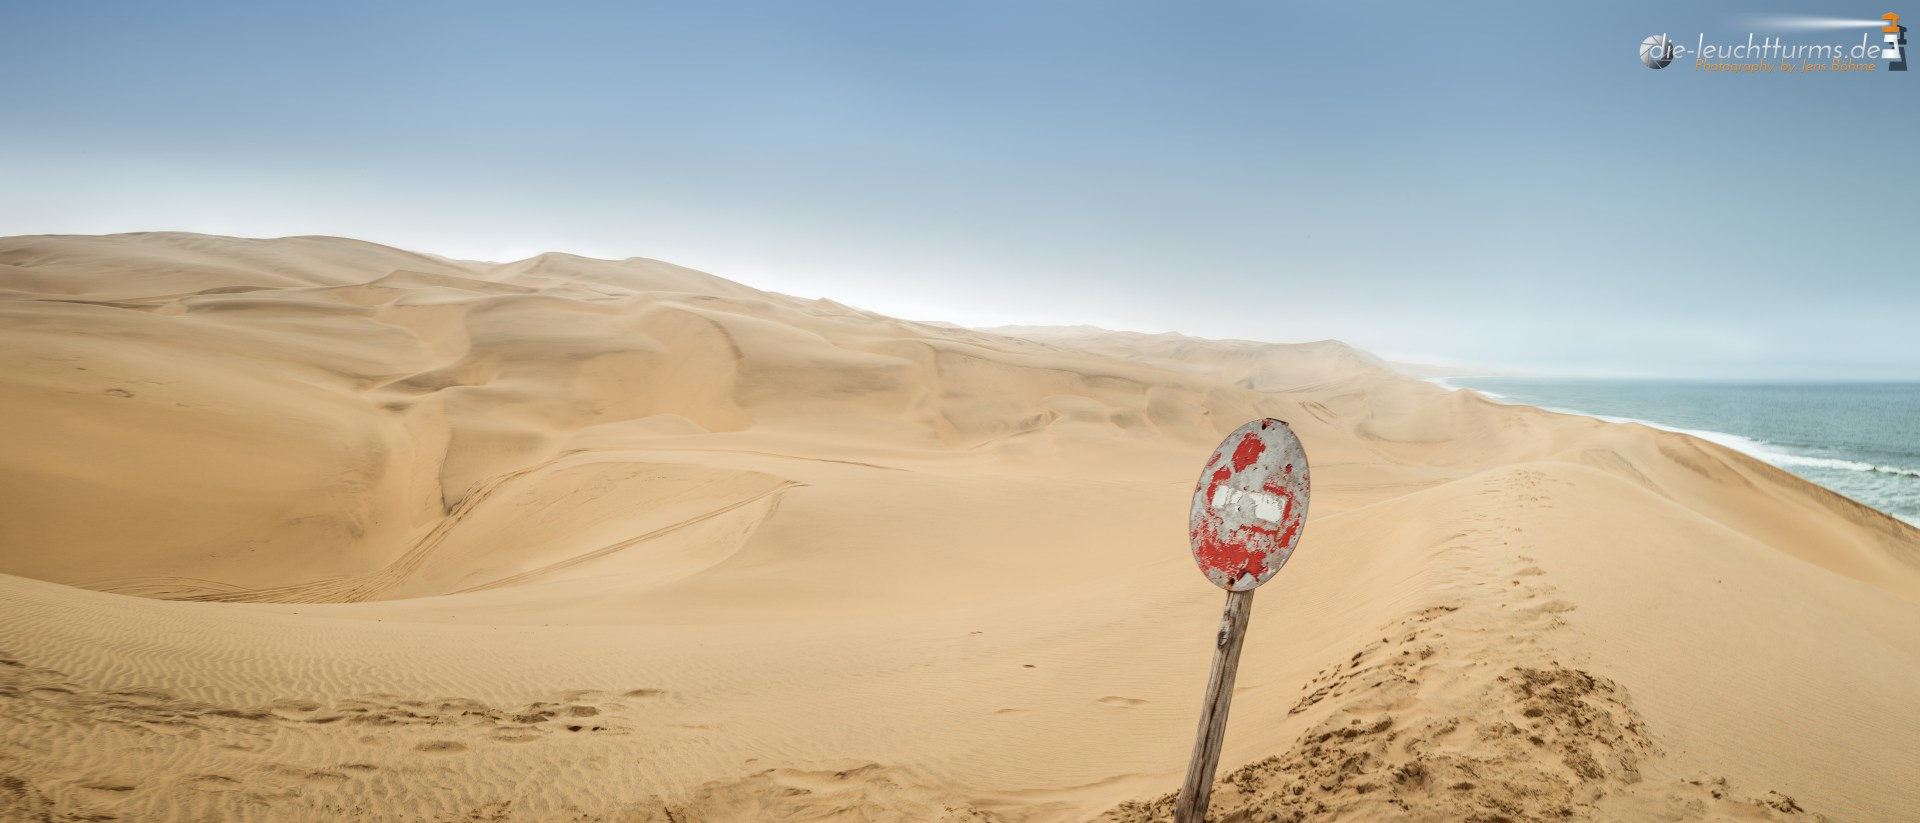 The end of the road, where the desert meets the ocean